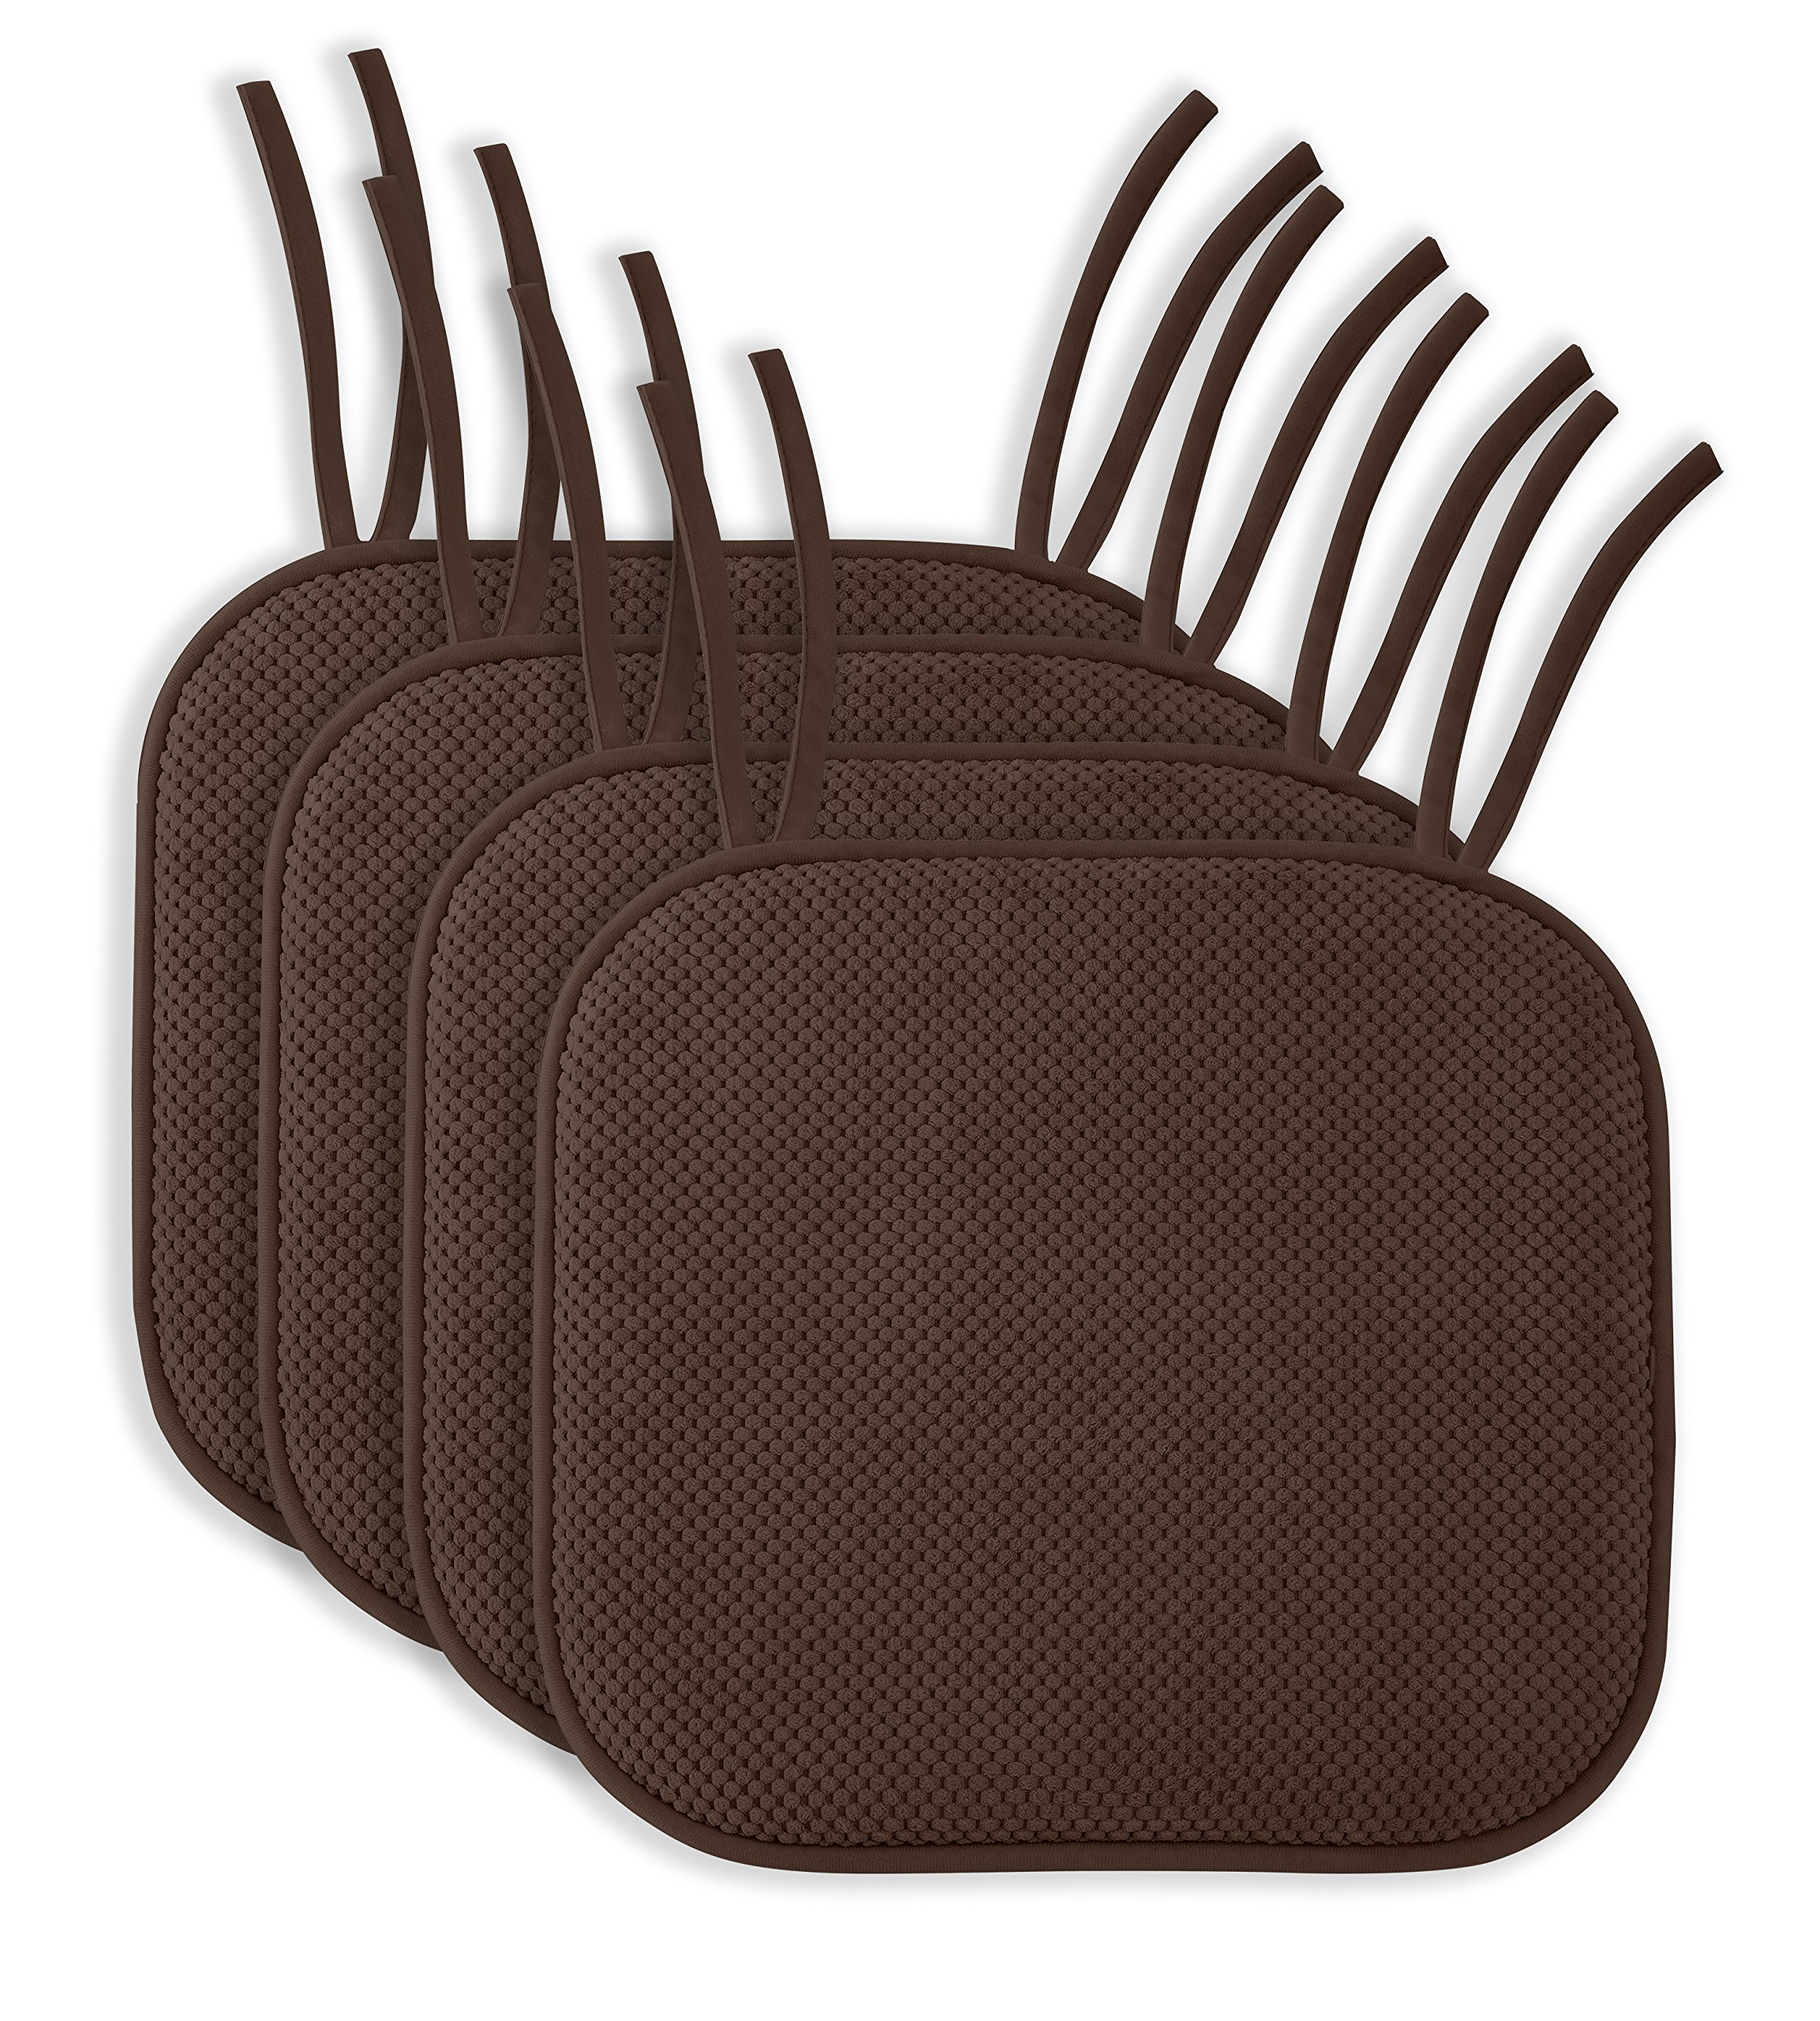 4 Pack: Ellington Home Non Slip Memory Foam Seat Cushion Chair Pads With Ties - 17'' x 16'' - Brown